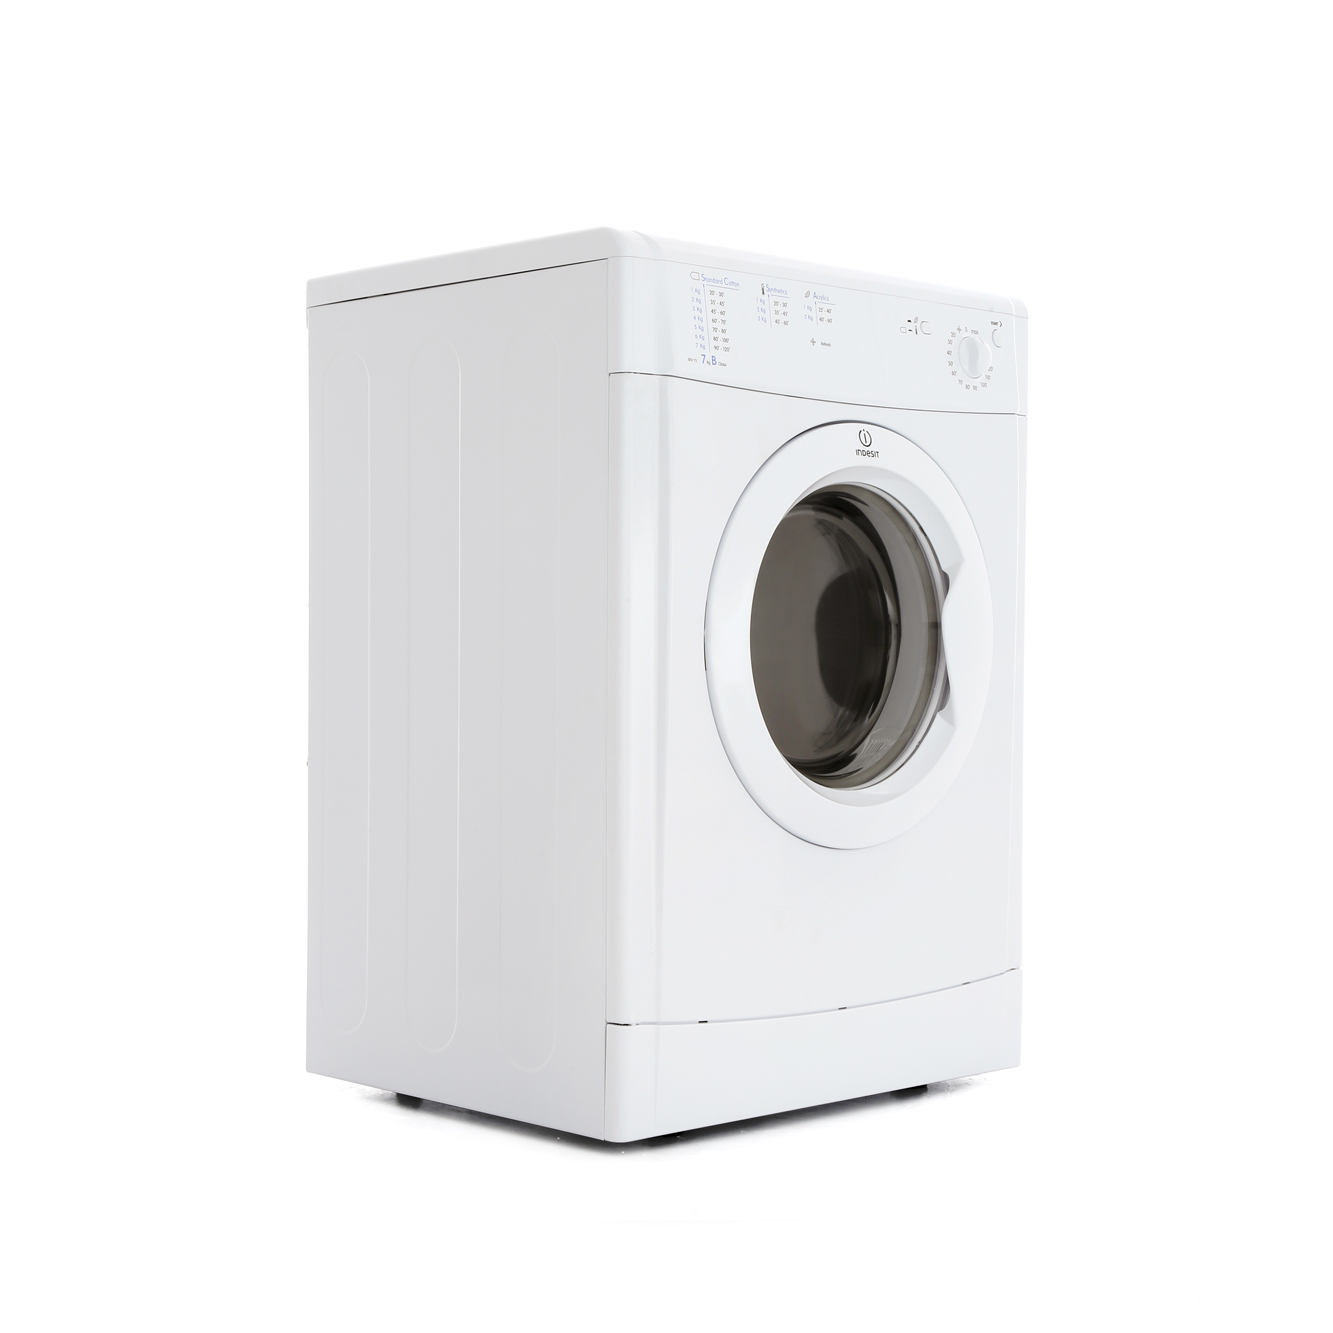 indesit idv75 vented dryer white buy online today 365 electrical. Black Bedroom Furniture Sets. Home Design Ideas